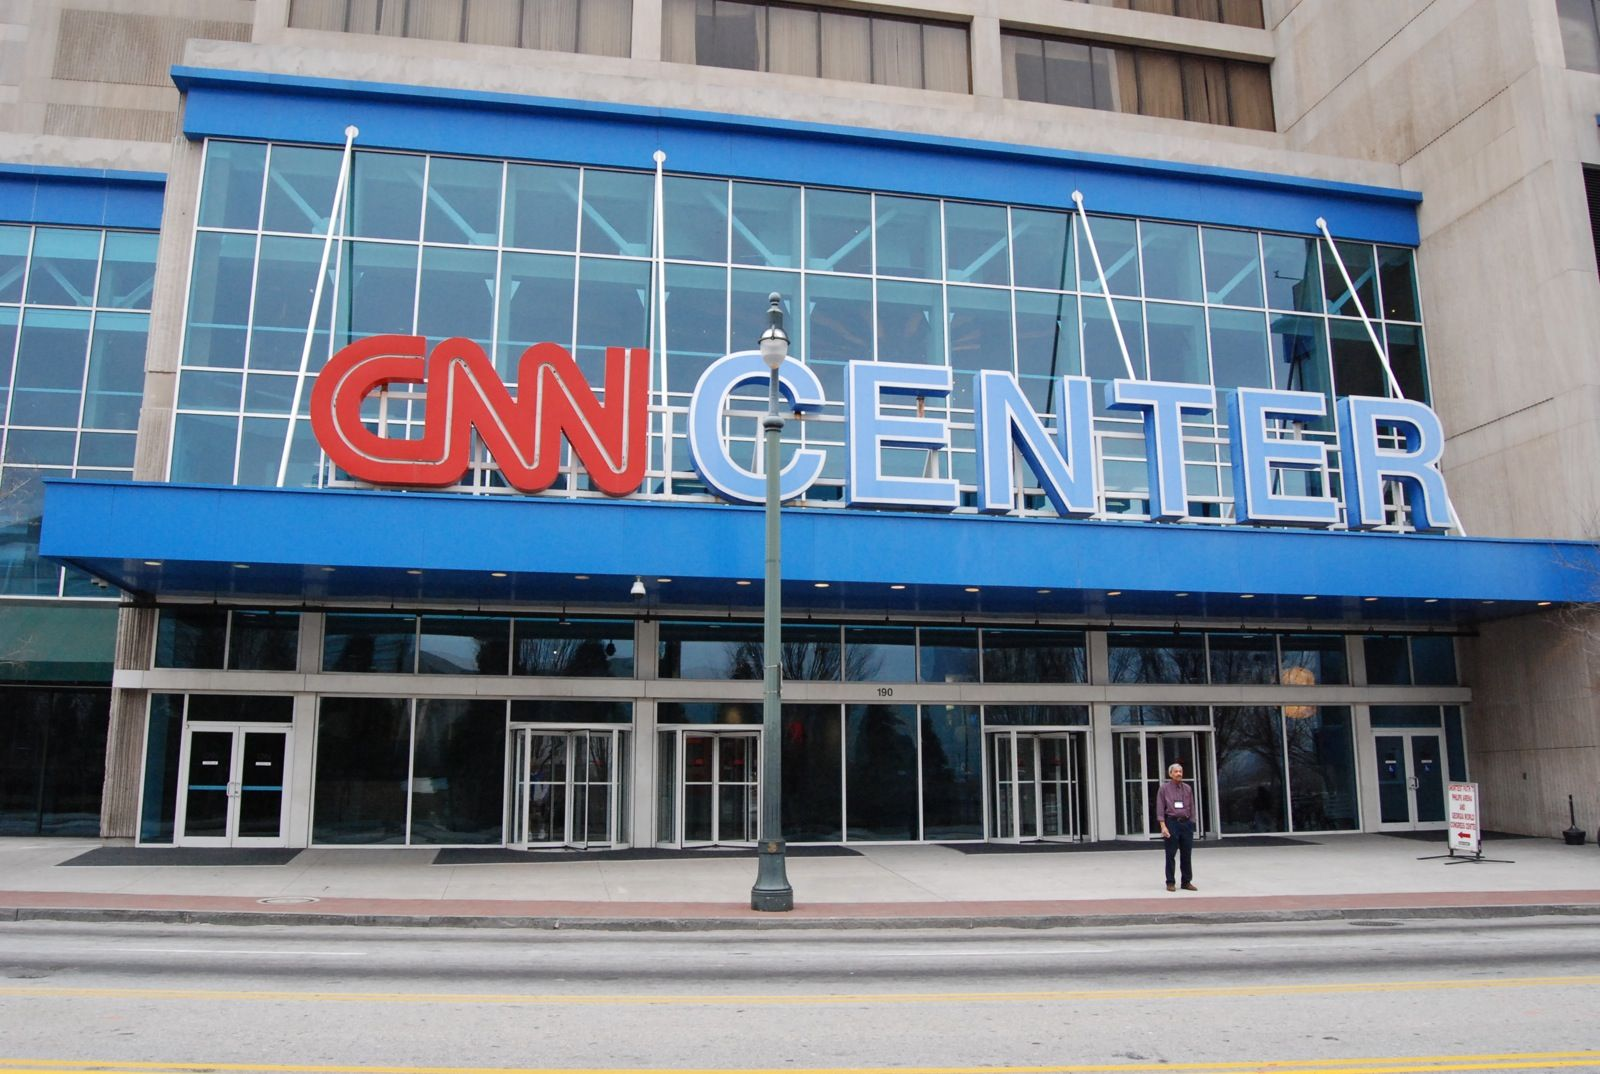 Visit the CNN Ce...Cnn